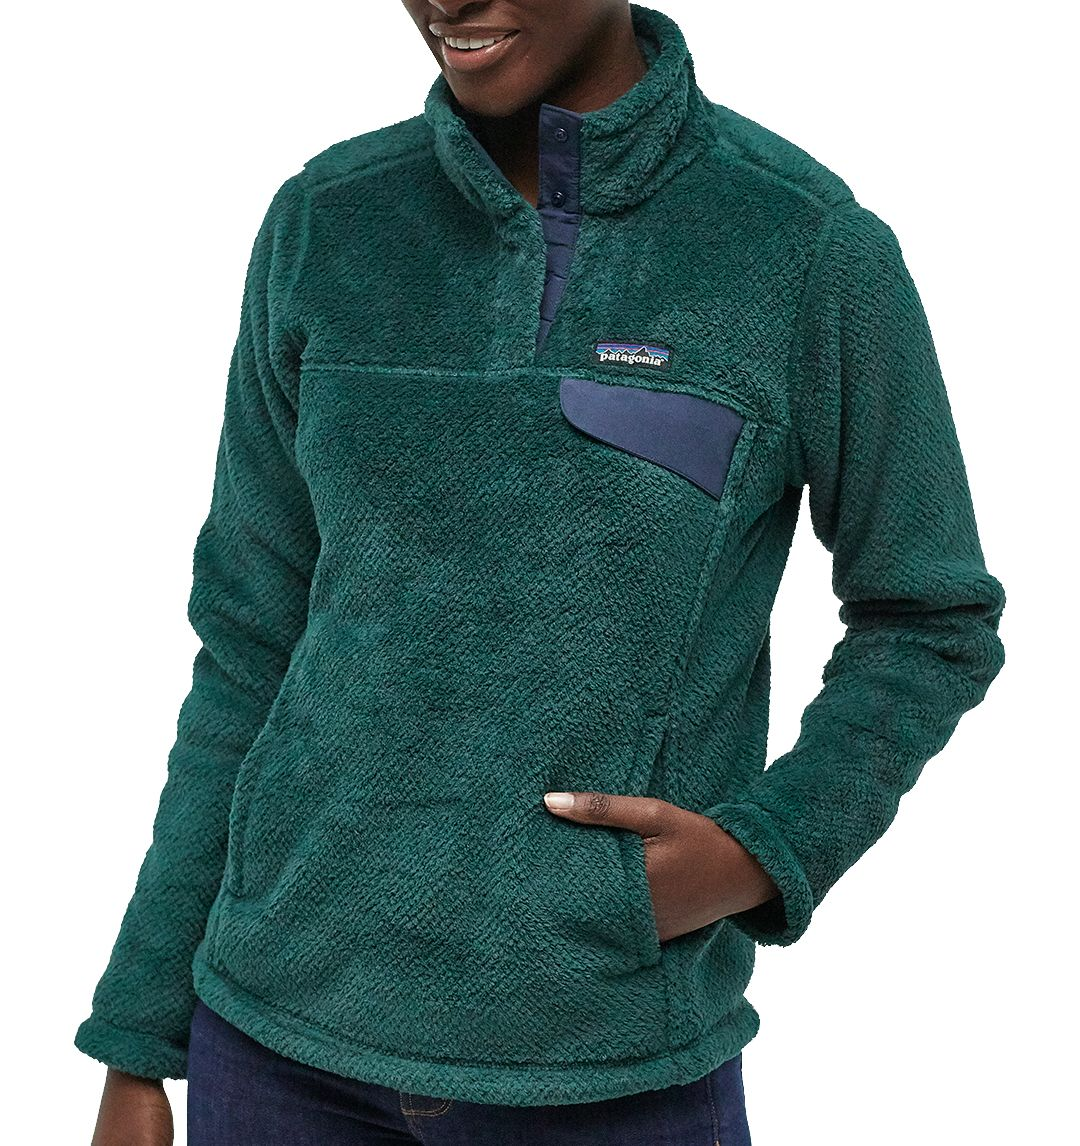 Patagonia Women's Re-Tool Snap-T Fleece Pullover 1